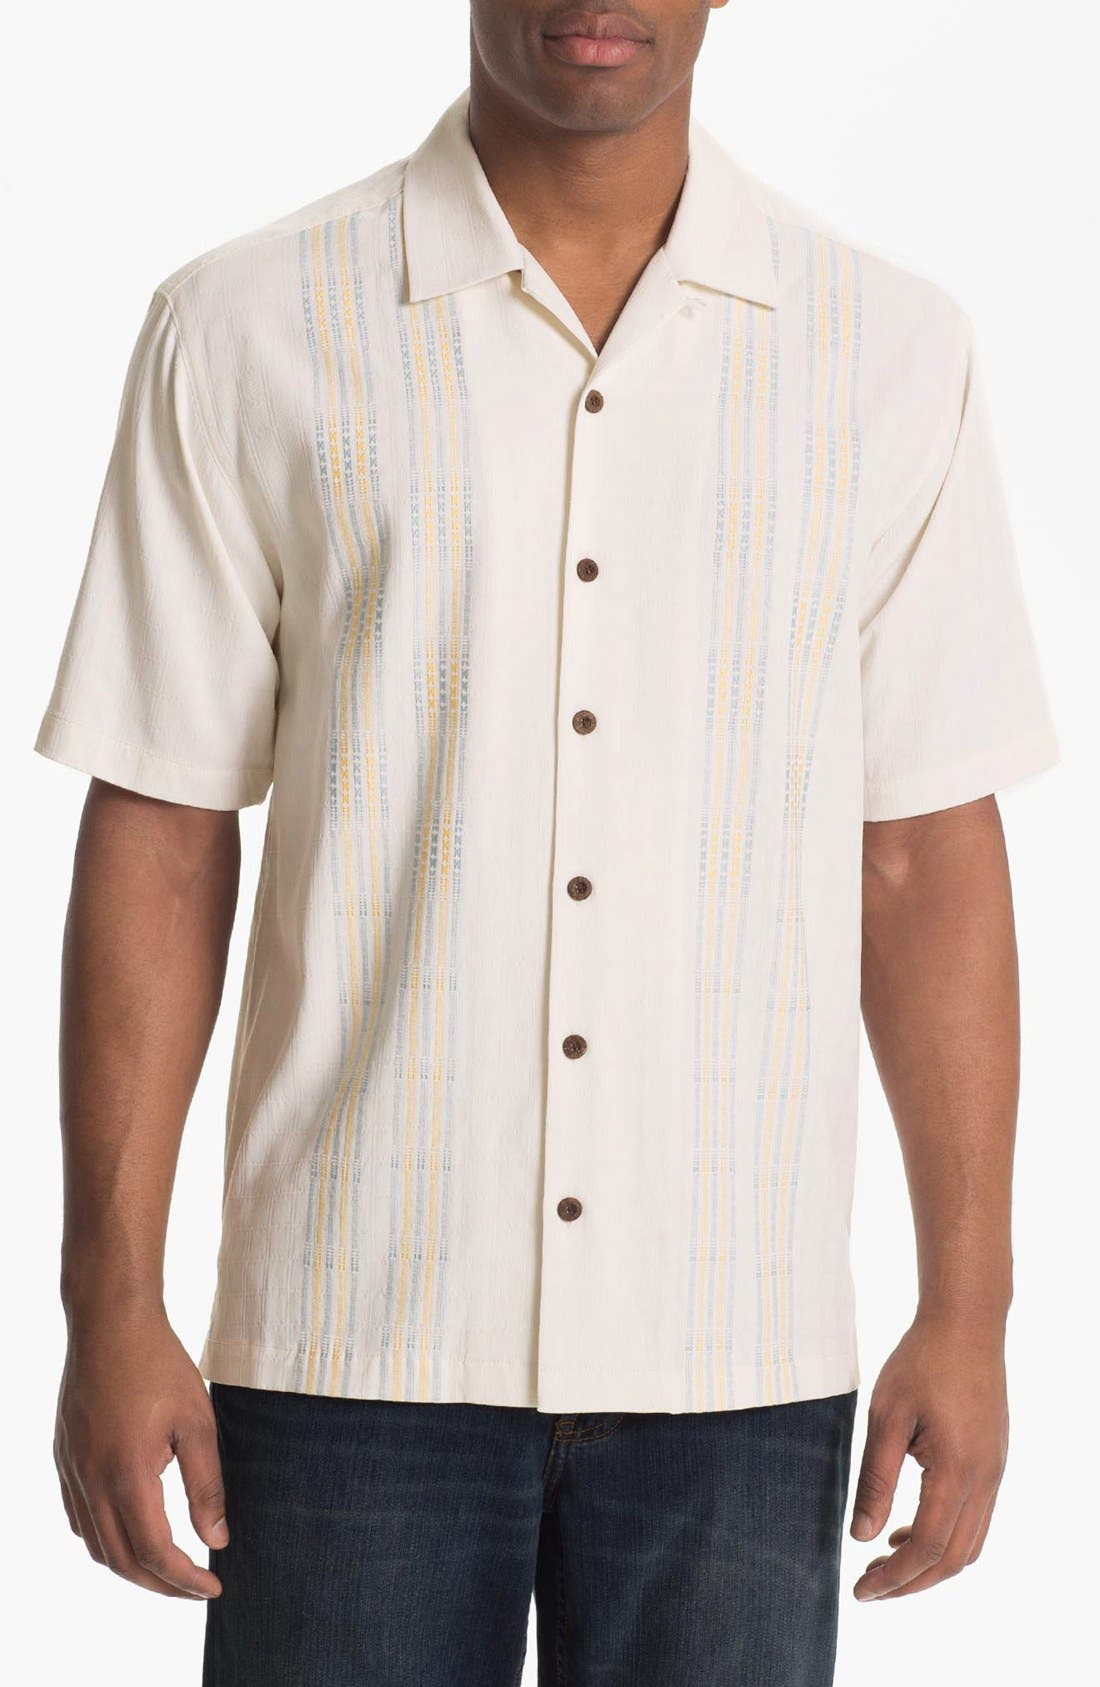 Main Image - Tommy Bahama 'Four Amigos' Silk Campshirt (Big & Tall)